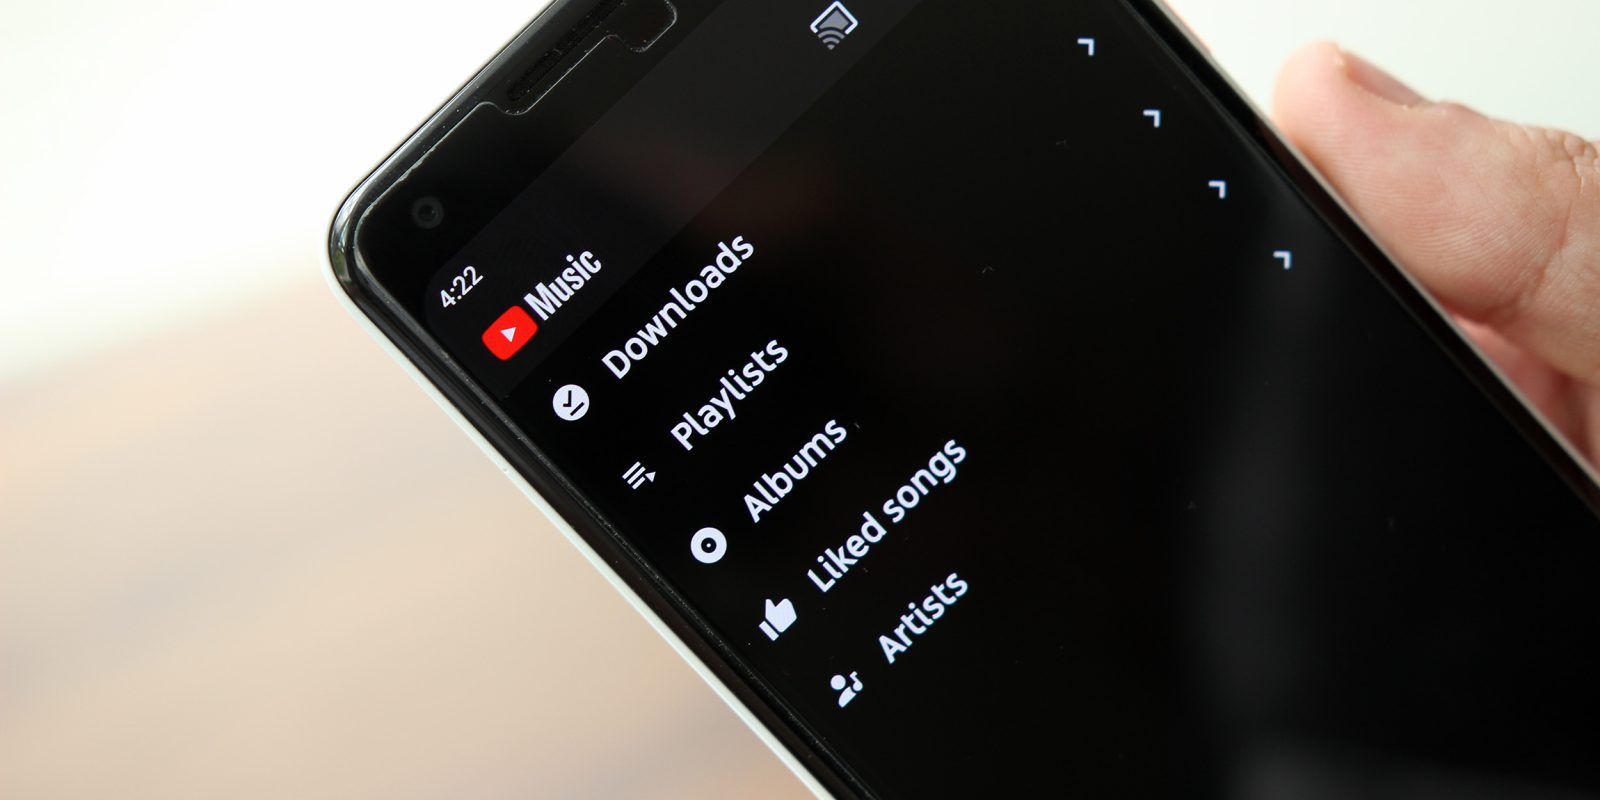 A year later, YouTube Music adds library sorting for albums and playlists